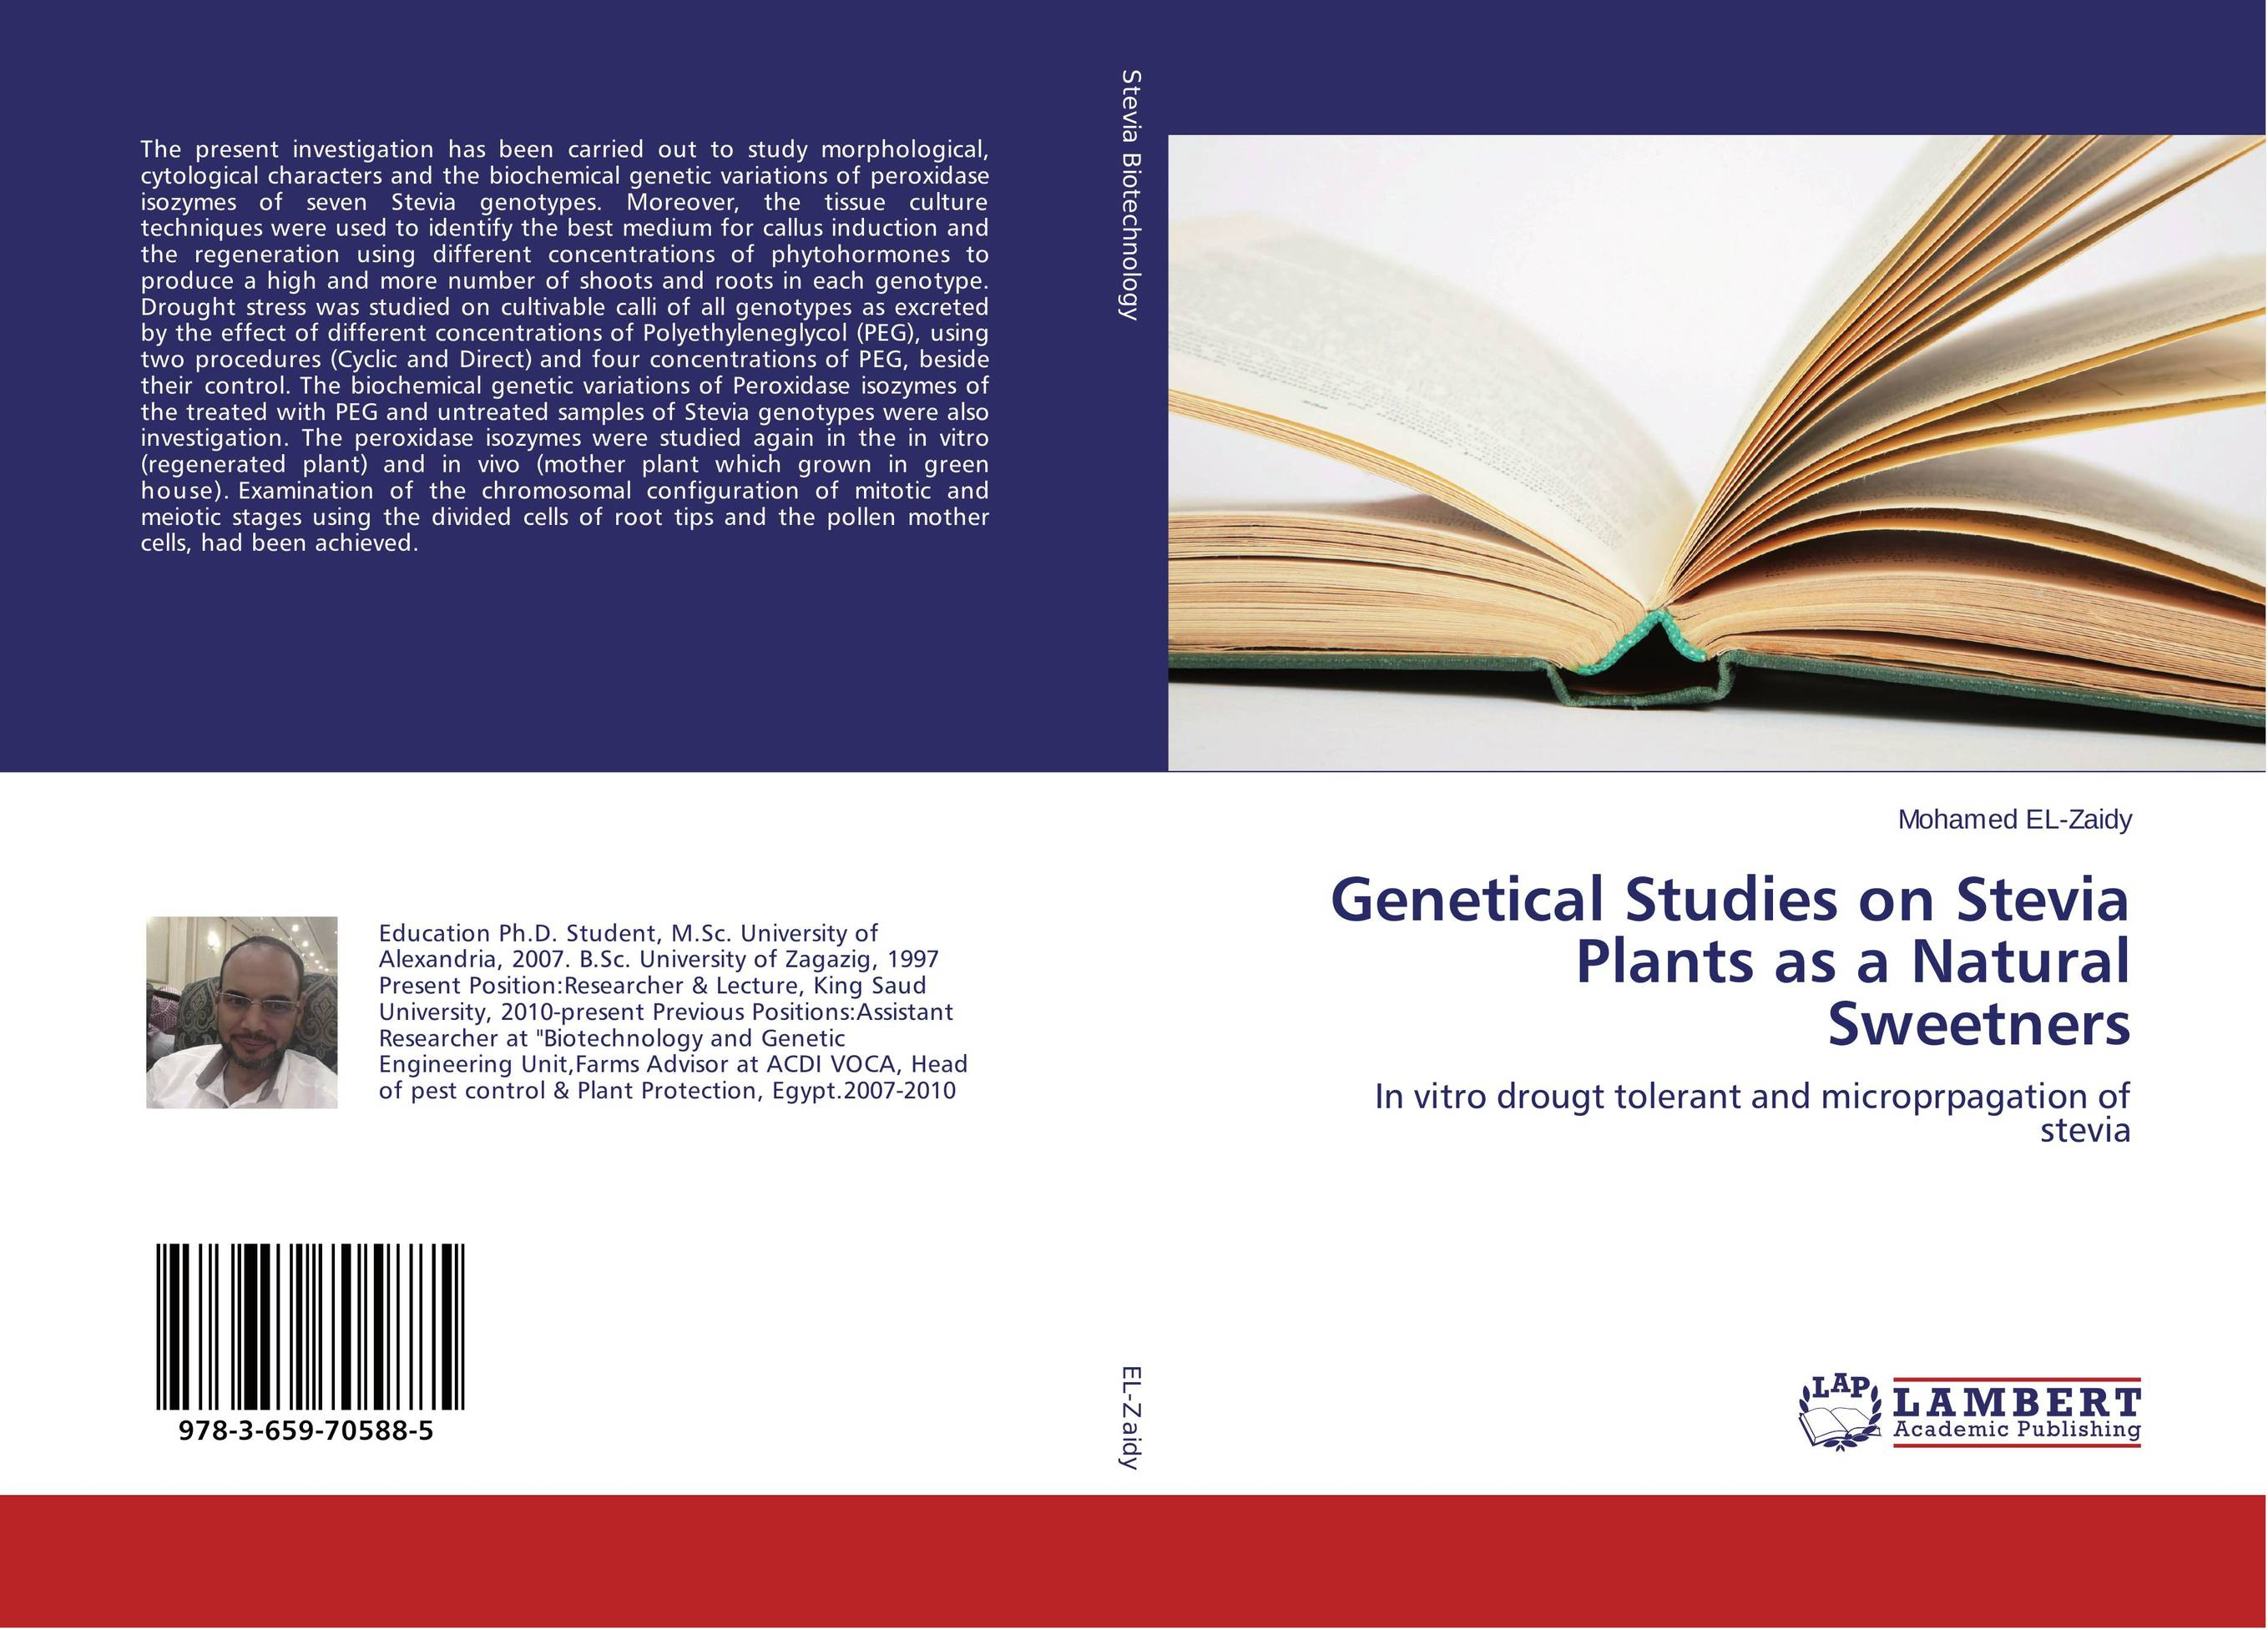 Genetical Studies on Stevia Plants as a Natural Sweetners studies on two medicinally important plants